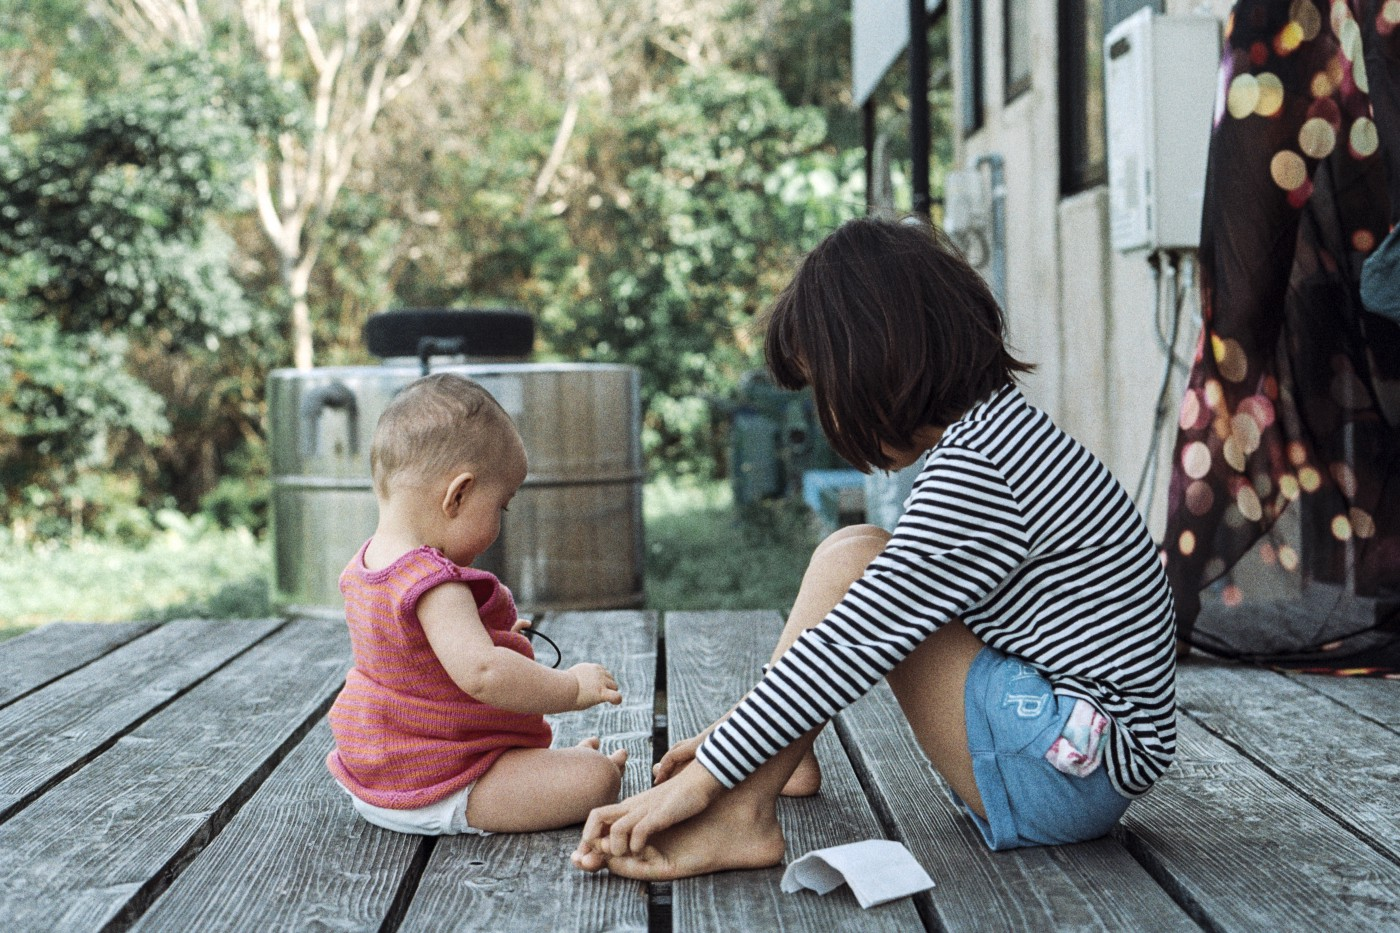 Baby with older girl sitting on porch with heads looking down